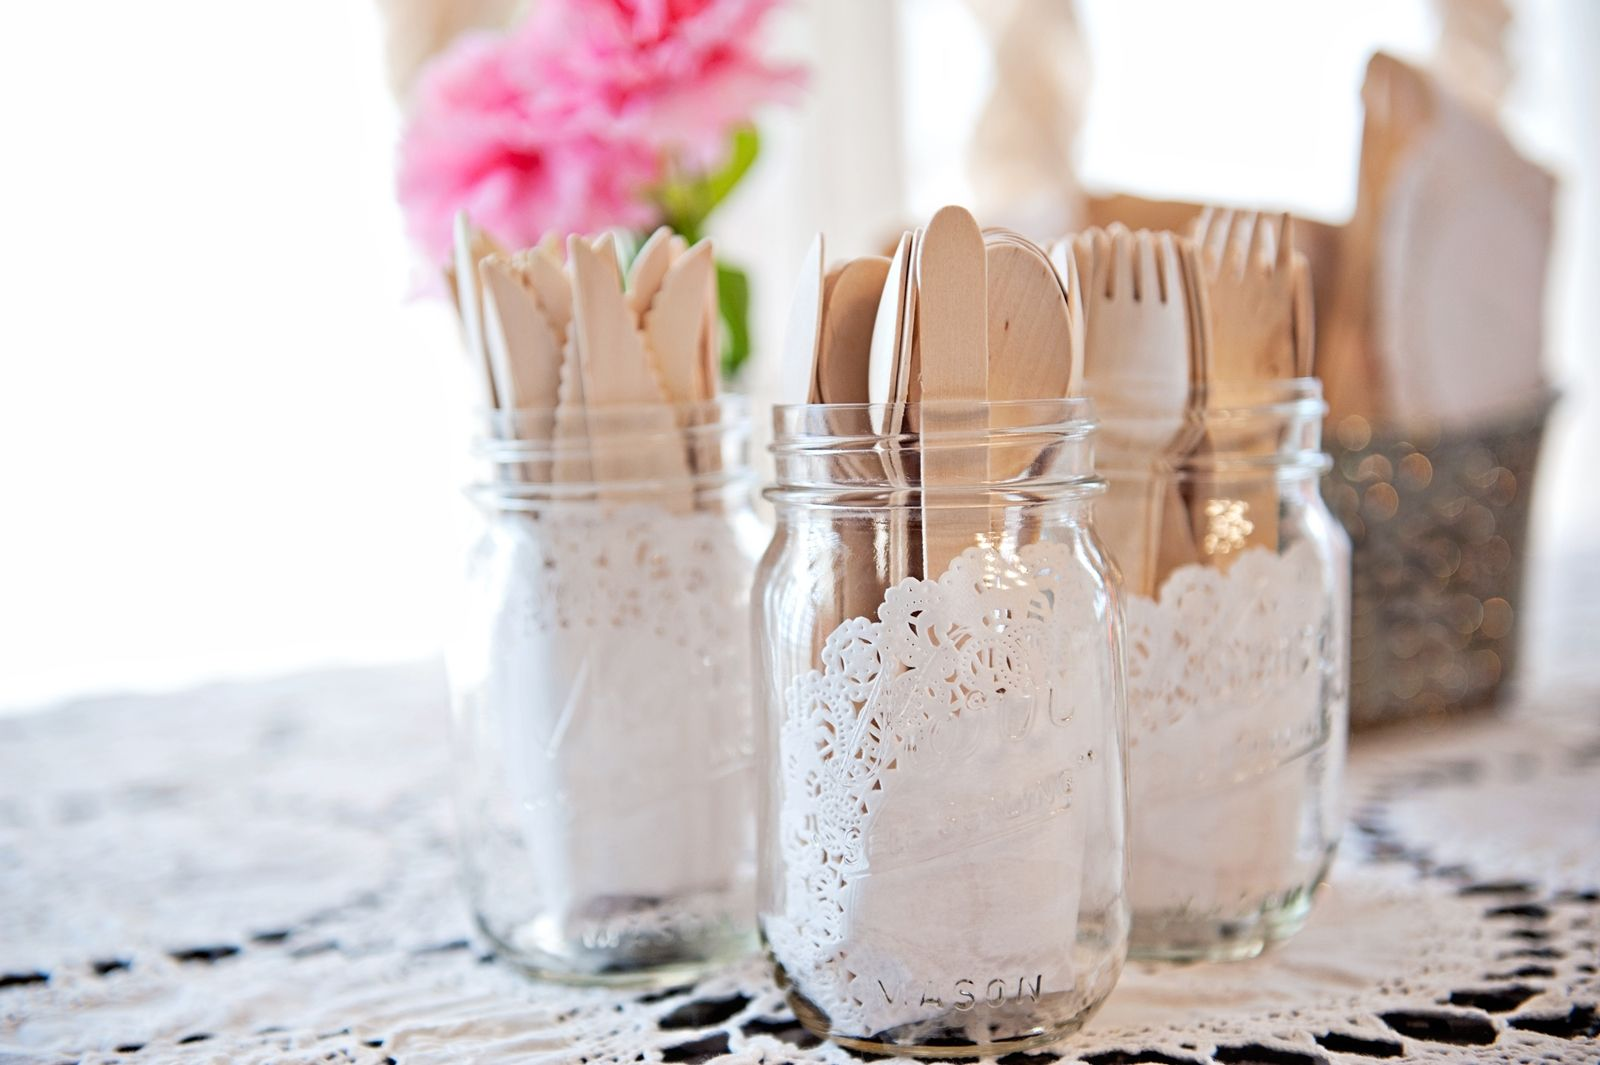 Mason jars holding the wooden utensils i have seen doilies tied to